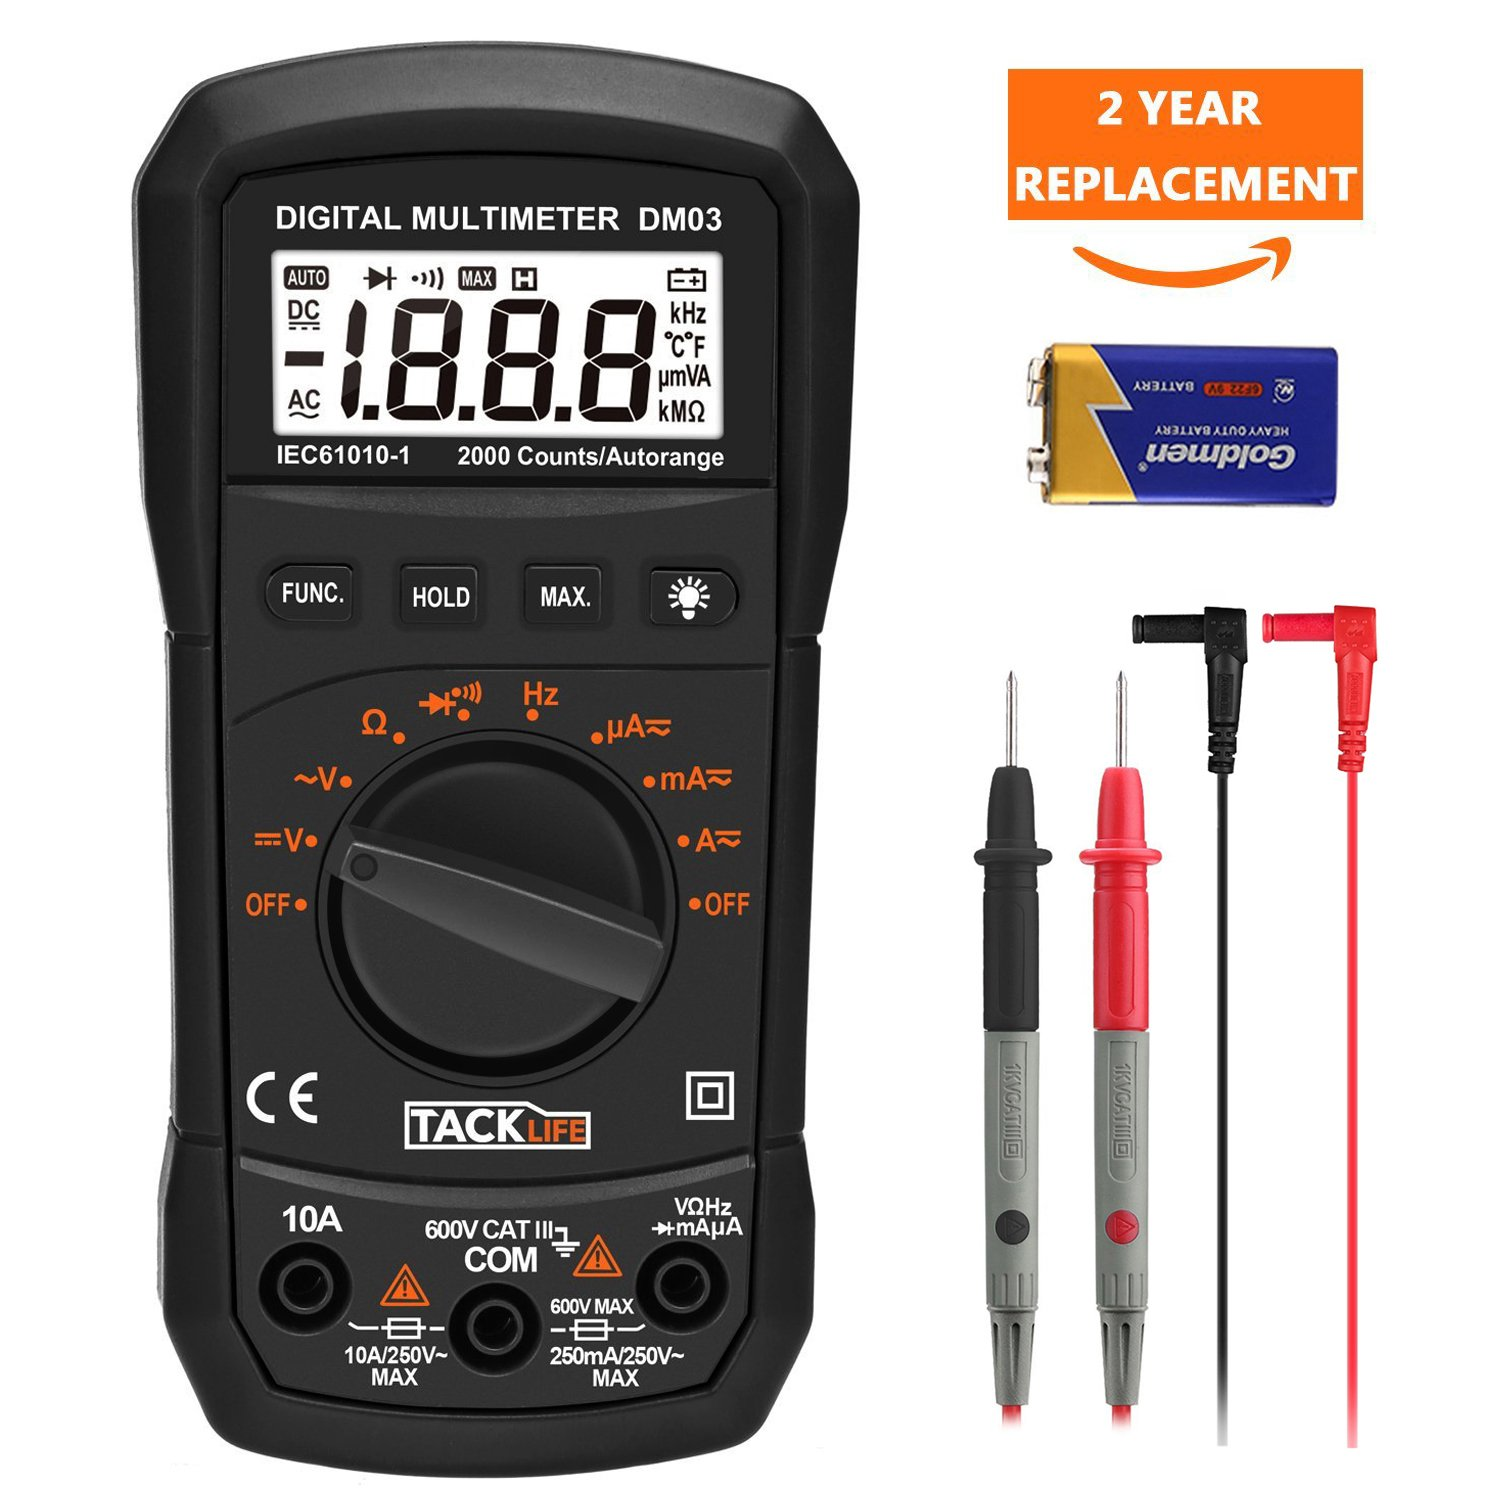 Multimeter,TACKLIFE DM03 Auto Ranging Multi Tester, Measures AC & DC Voltage and Current, Resistance, Continuity, Frequency, Diode Electronic Tester, Digital Multimeter with Backlit LCD